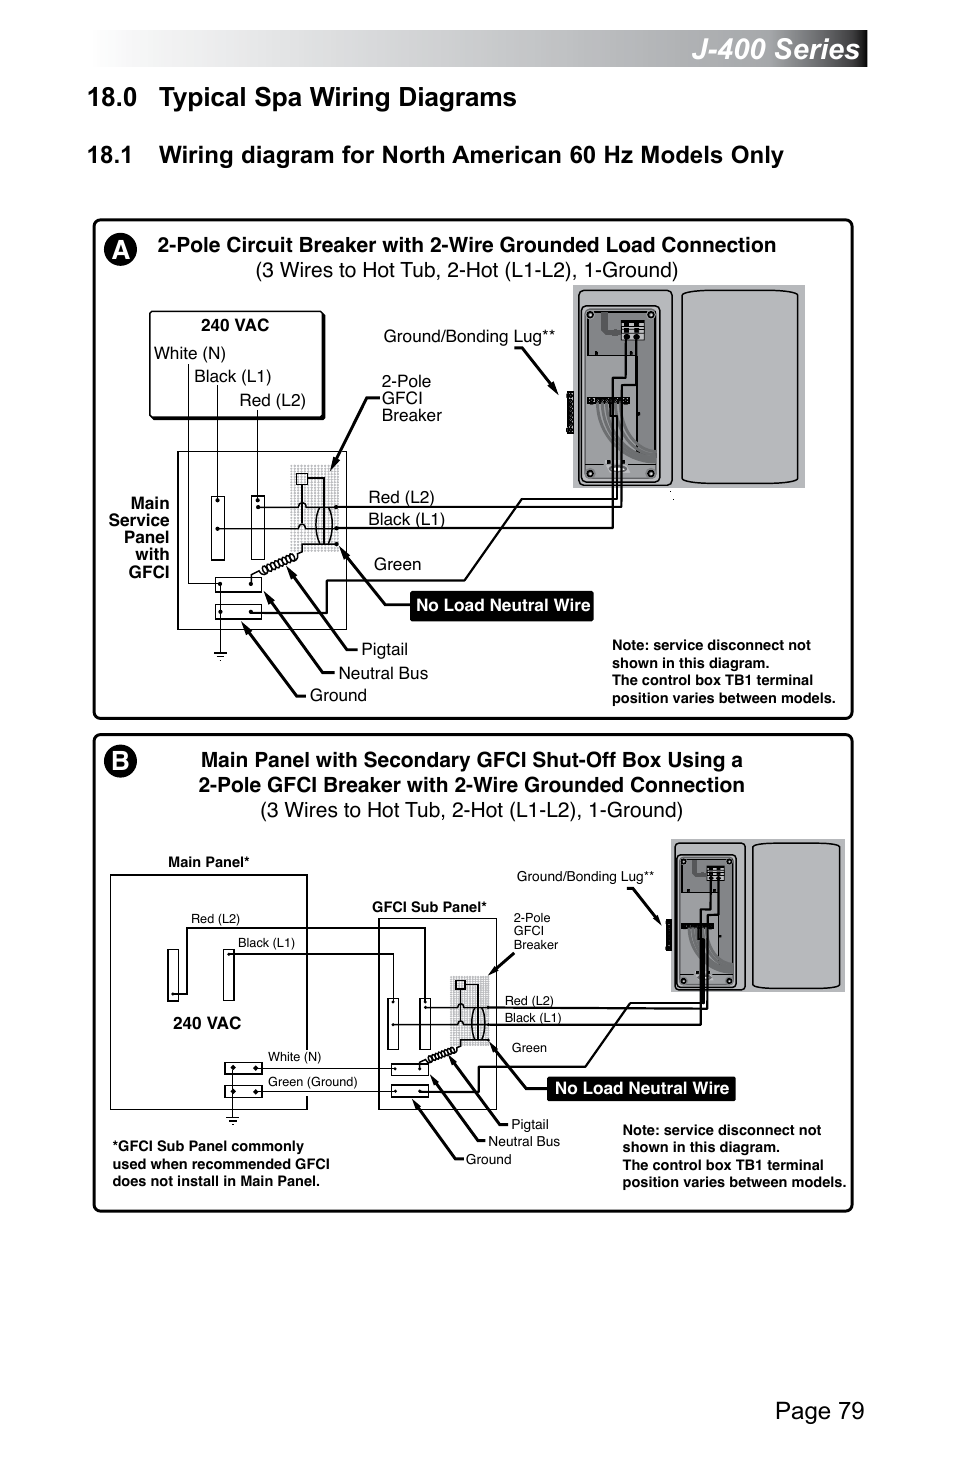 jacuzzi j 470 page85 0 typical spa wiring diagrams, j 400 series, page 79 jacuzzi j 3 wire spa wiring diagram at crackthecode.co